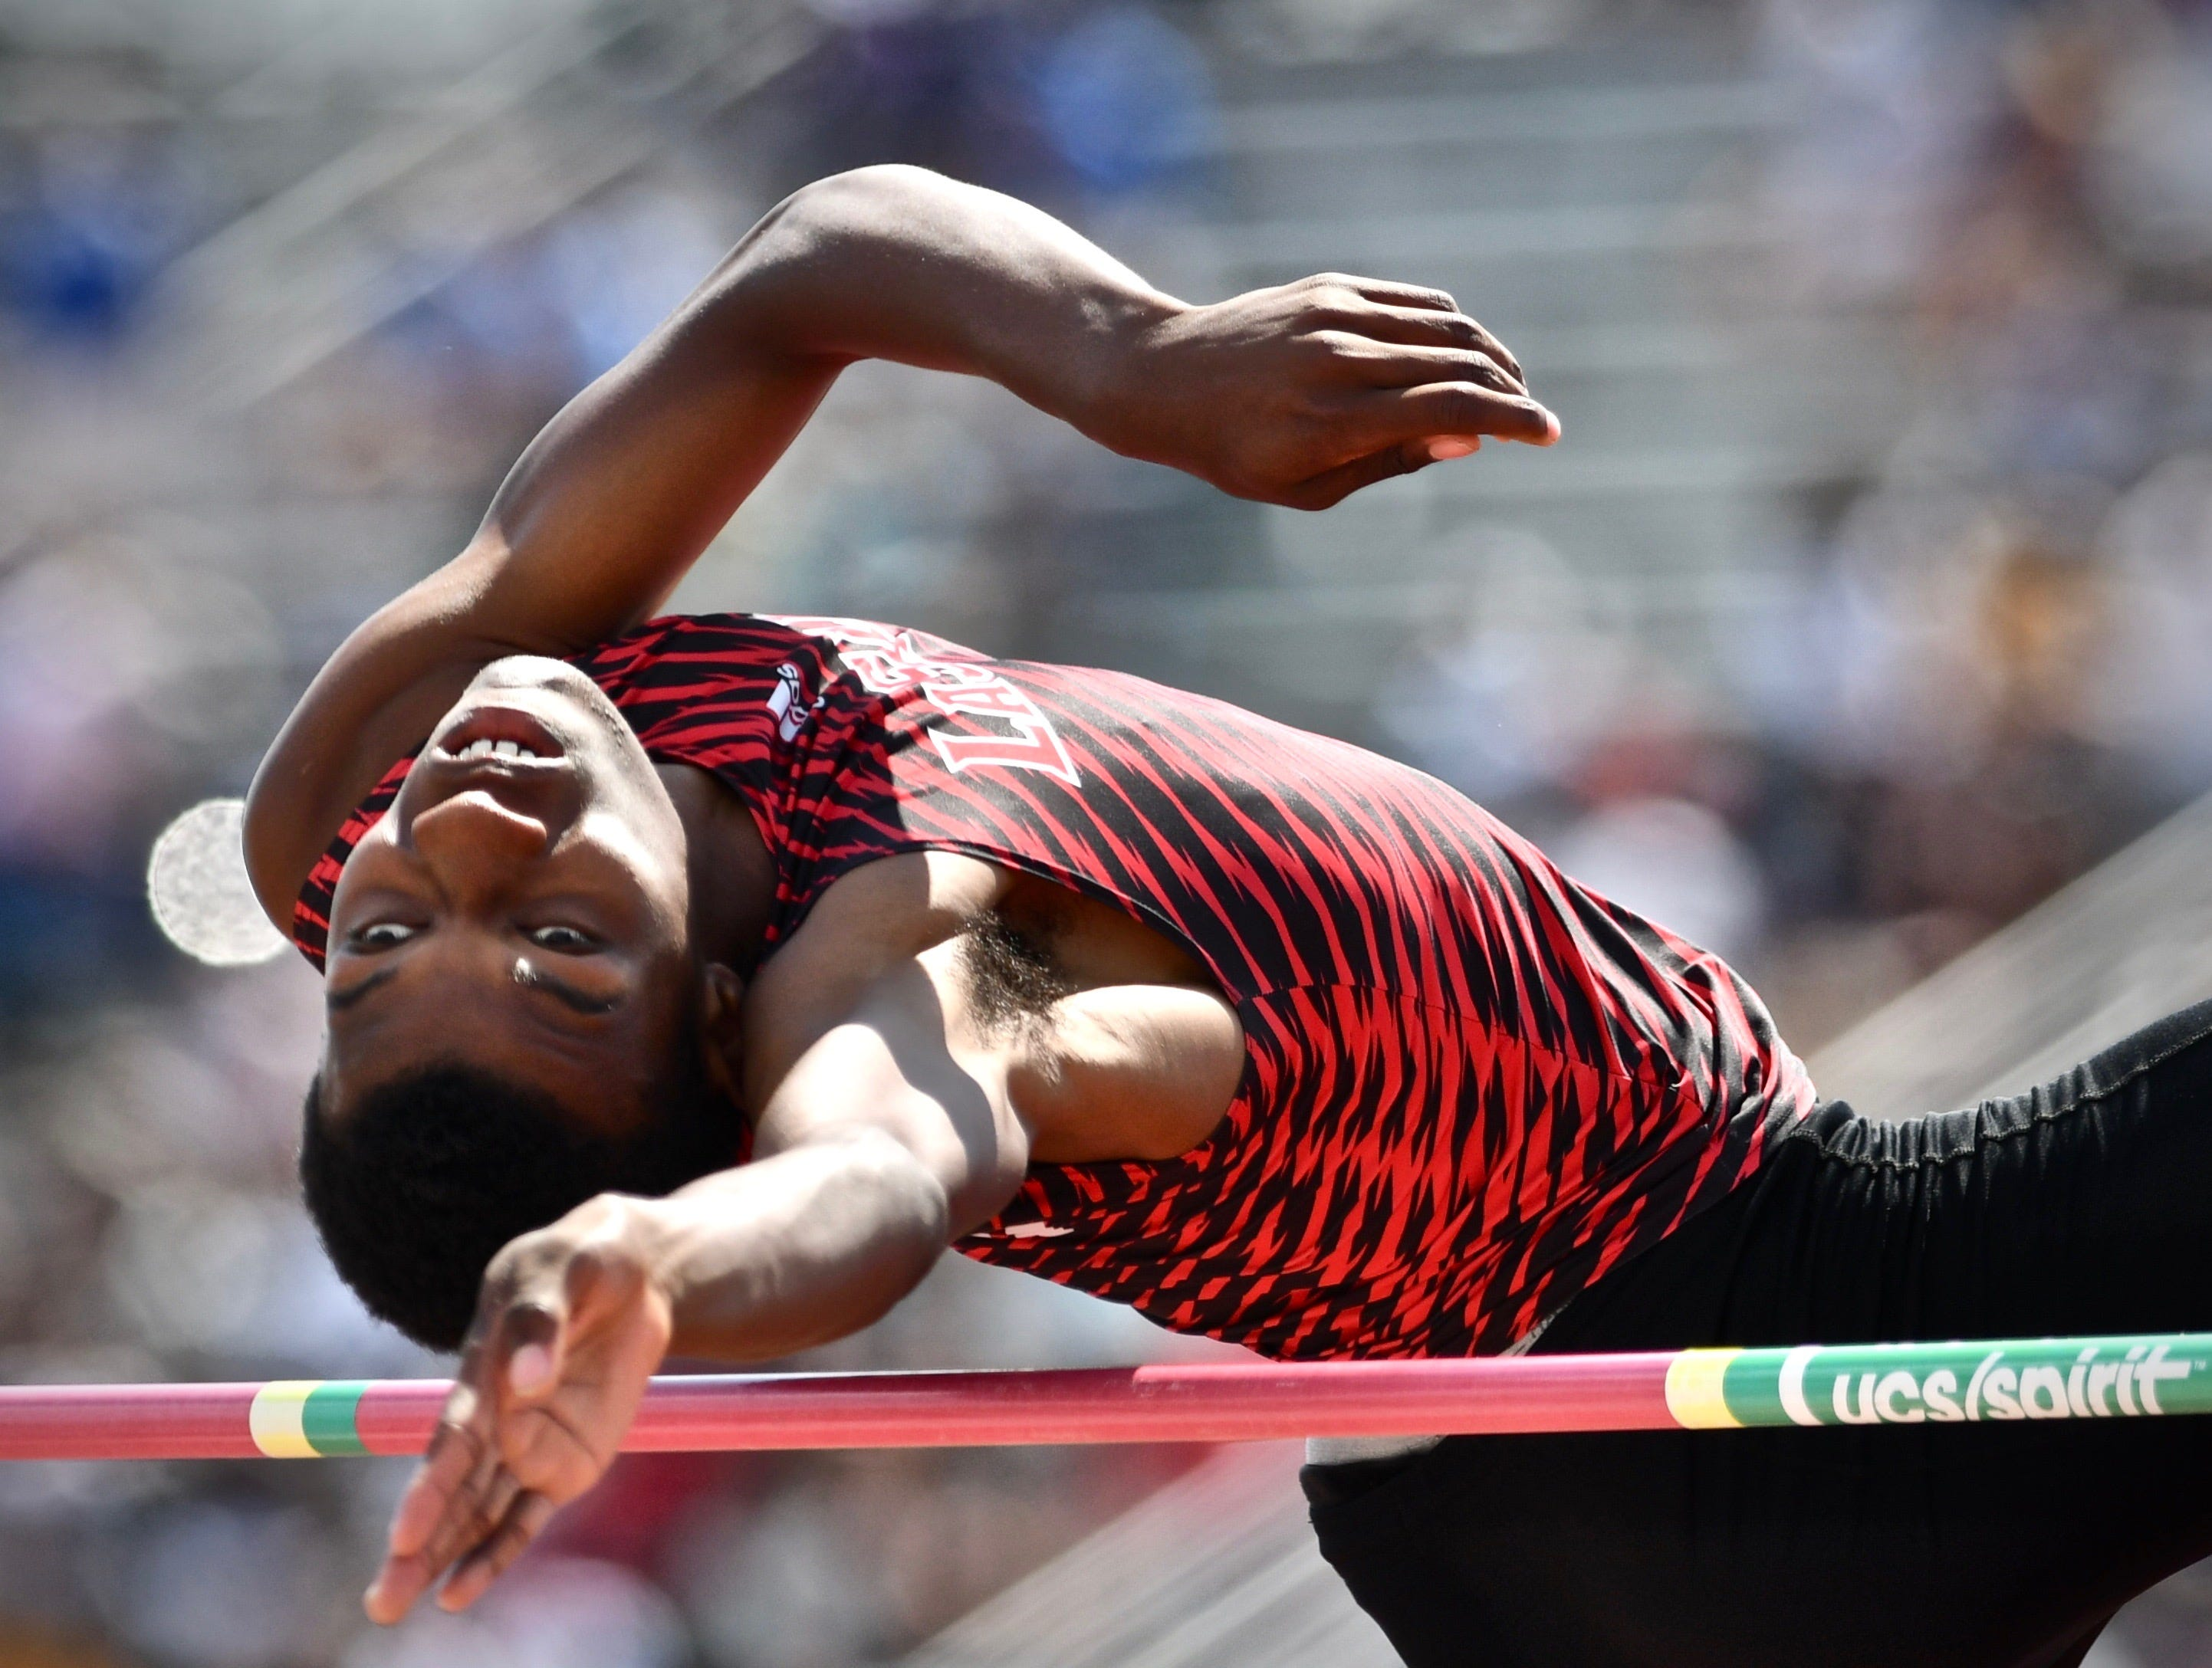 La Salle's Cameron Willis finished sixth in the boys high jump Saturday, June 2nd at the State Track and Field Championships at Jesse Owens Memorial Stadium